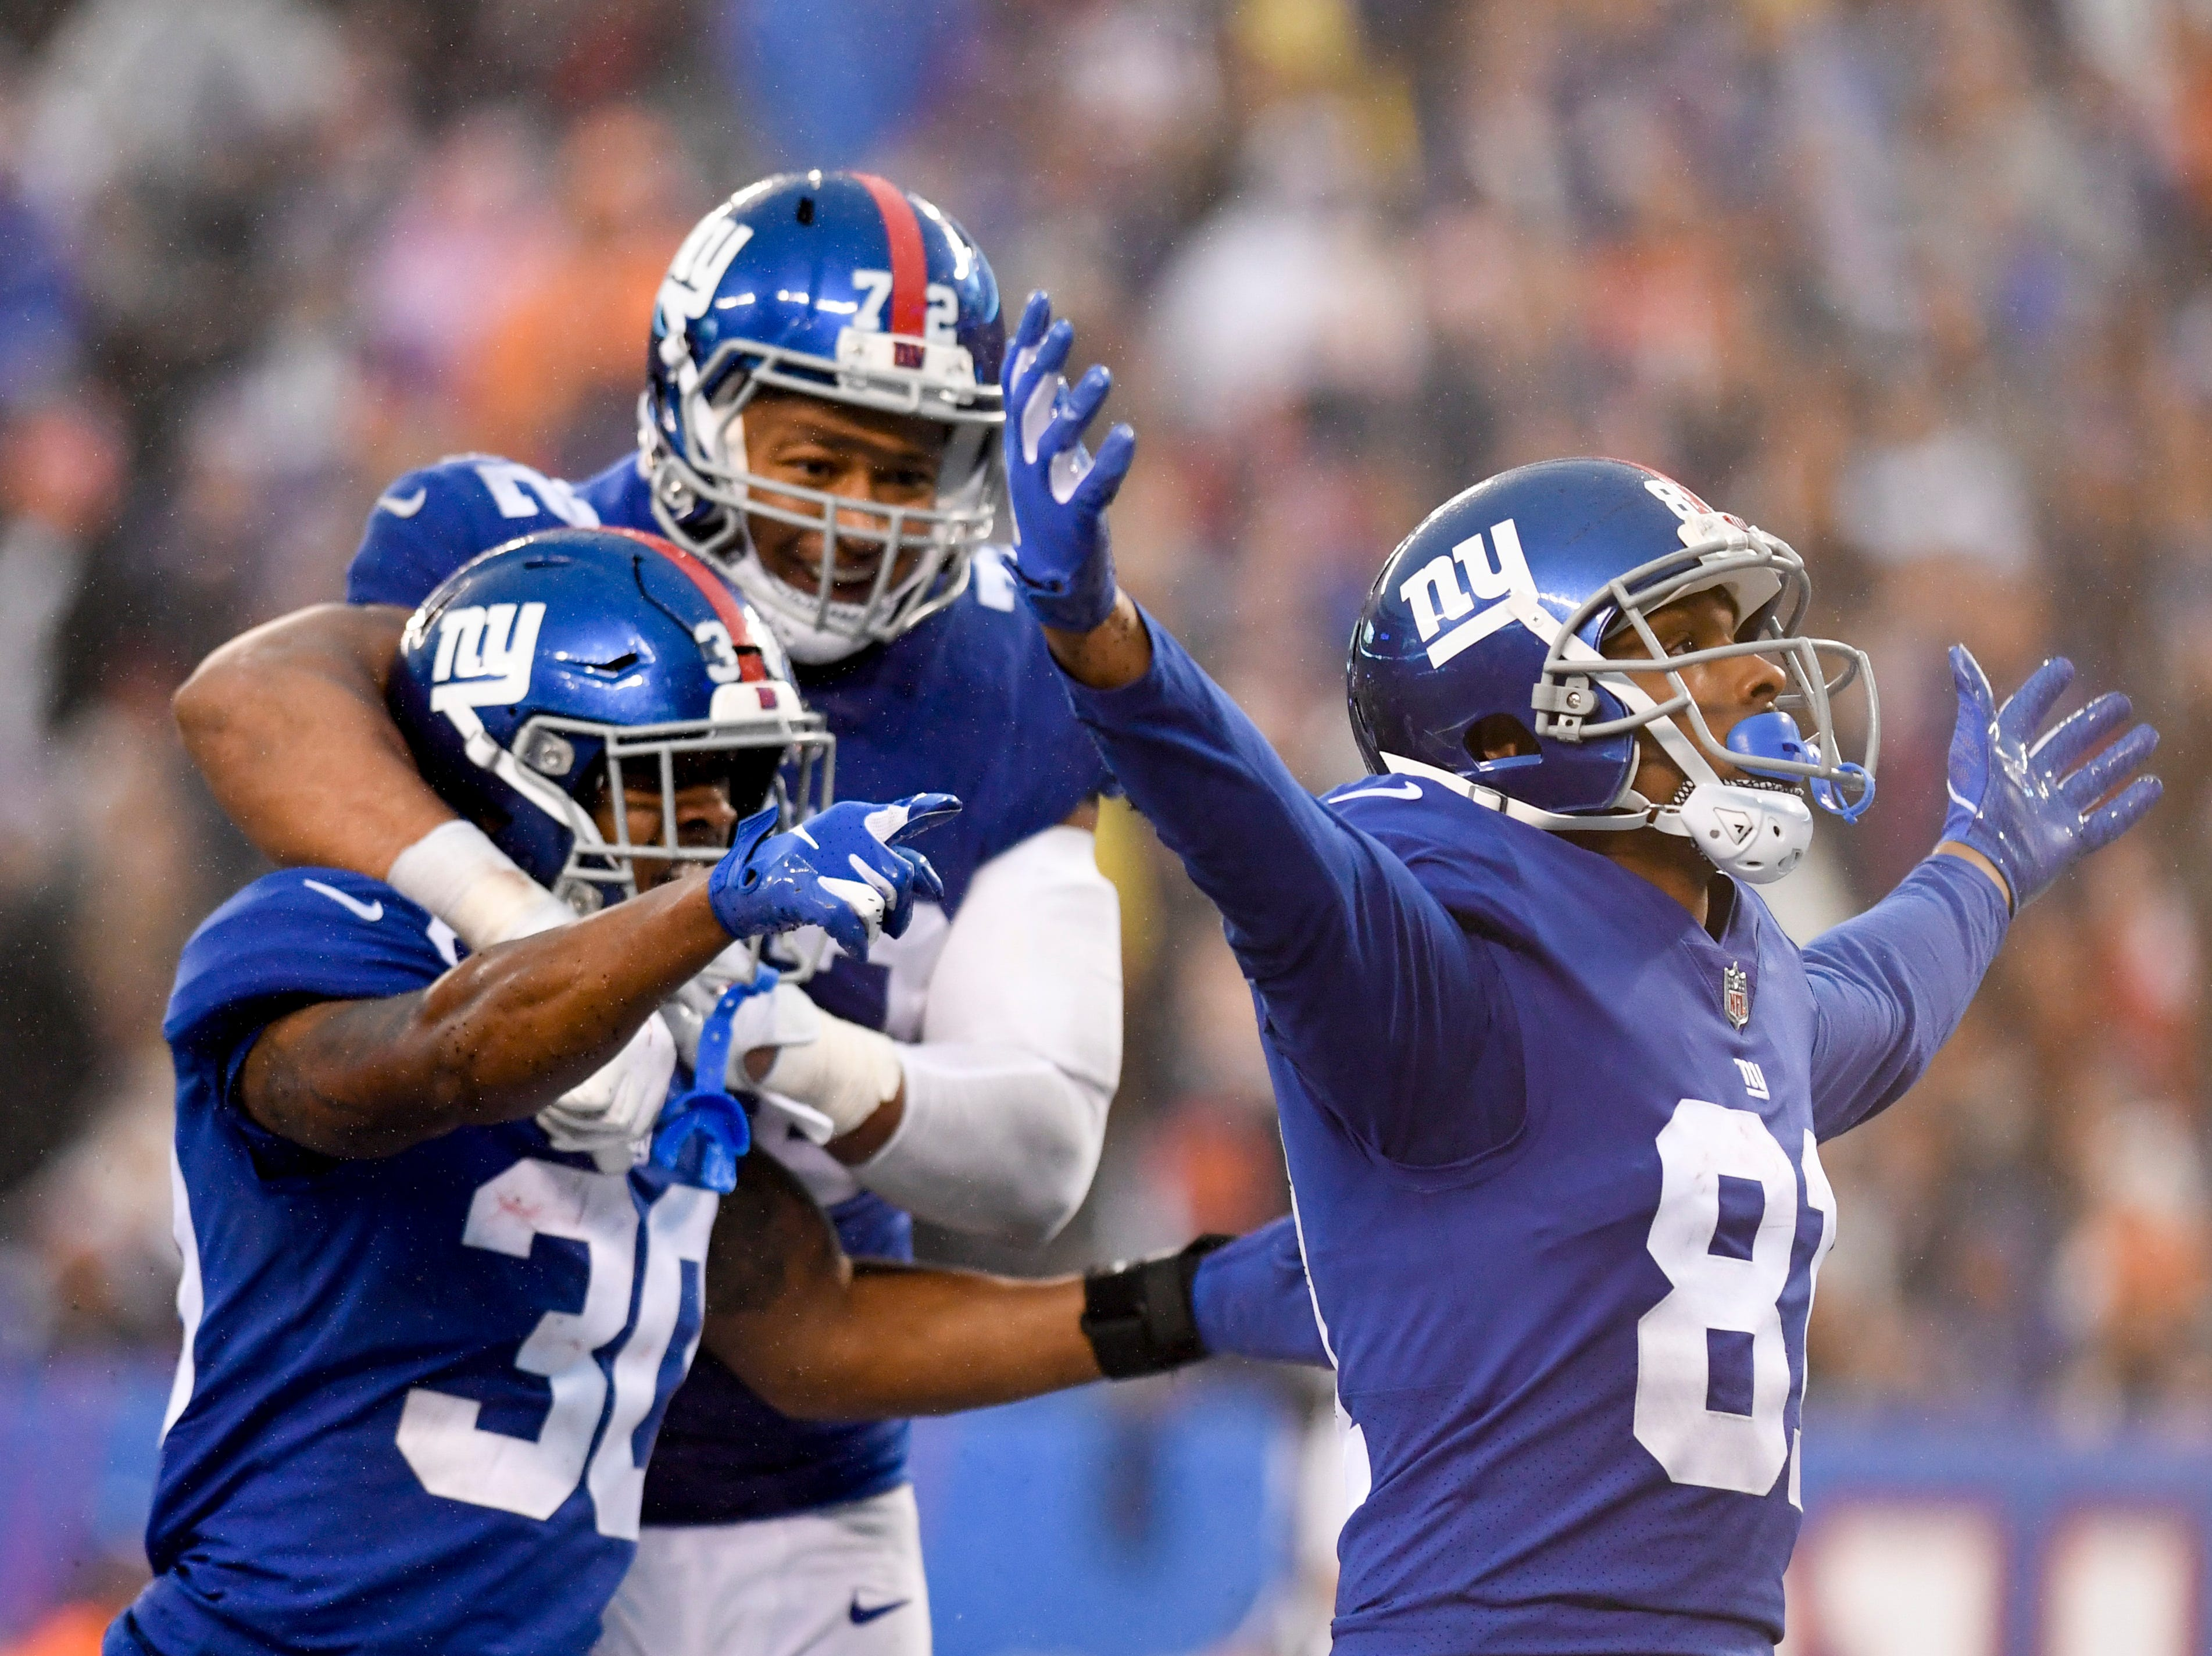 New York Giants wide receiver Russell Shepard (81), cornerback Antonio Hamilton (30), and defensive end Kerry Wynn (72) celebrate a special teams play putting the Chicago Bears on their own one-yard-line in the second half. The New York Giants defeat the Chicago Bears in overtime 30-27 on Sunday, Dec. 2, 2018, in East Rutherford.